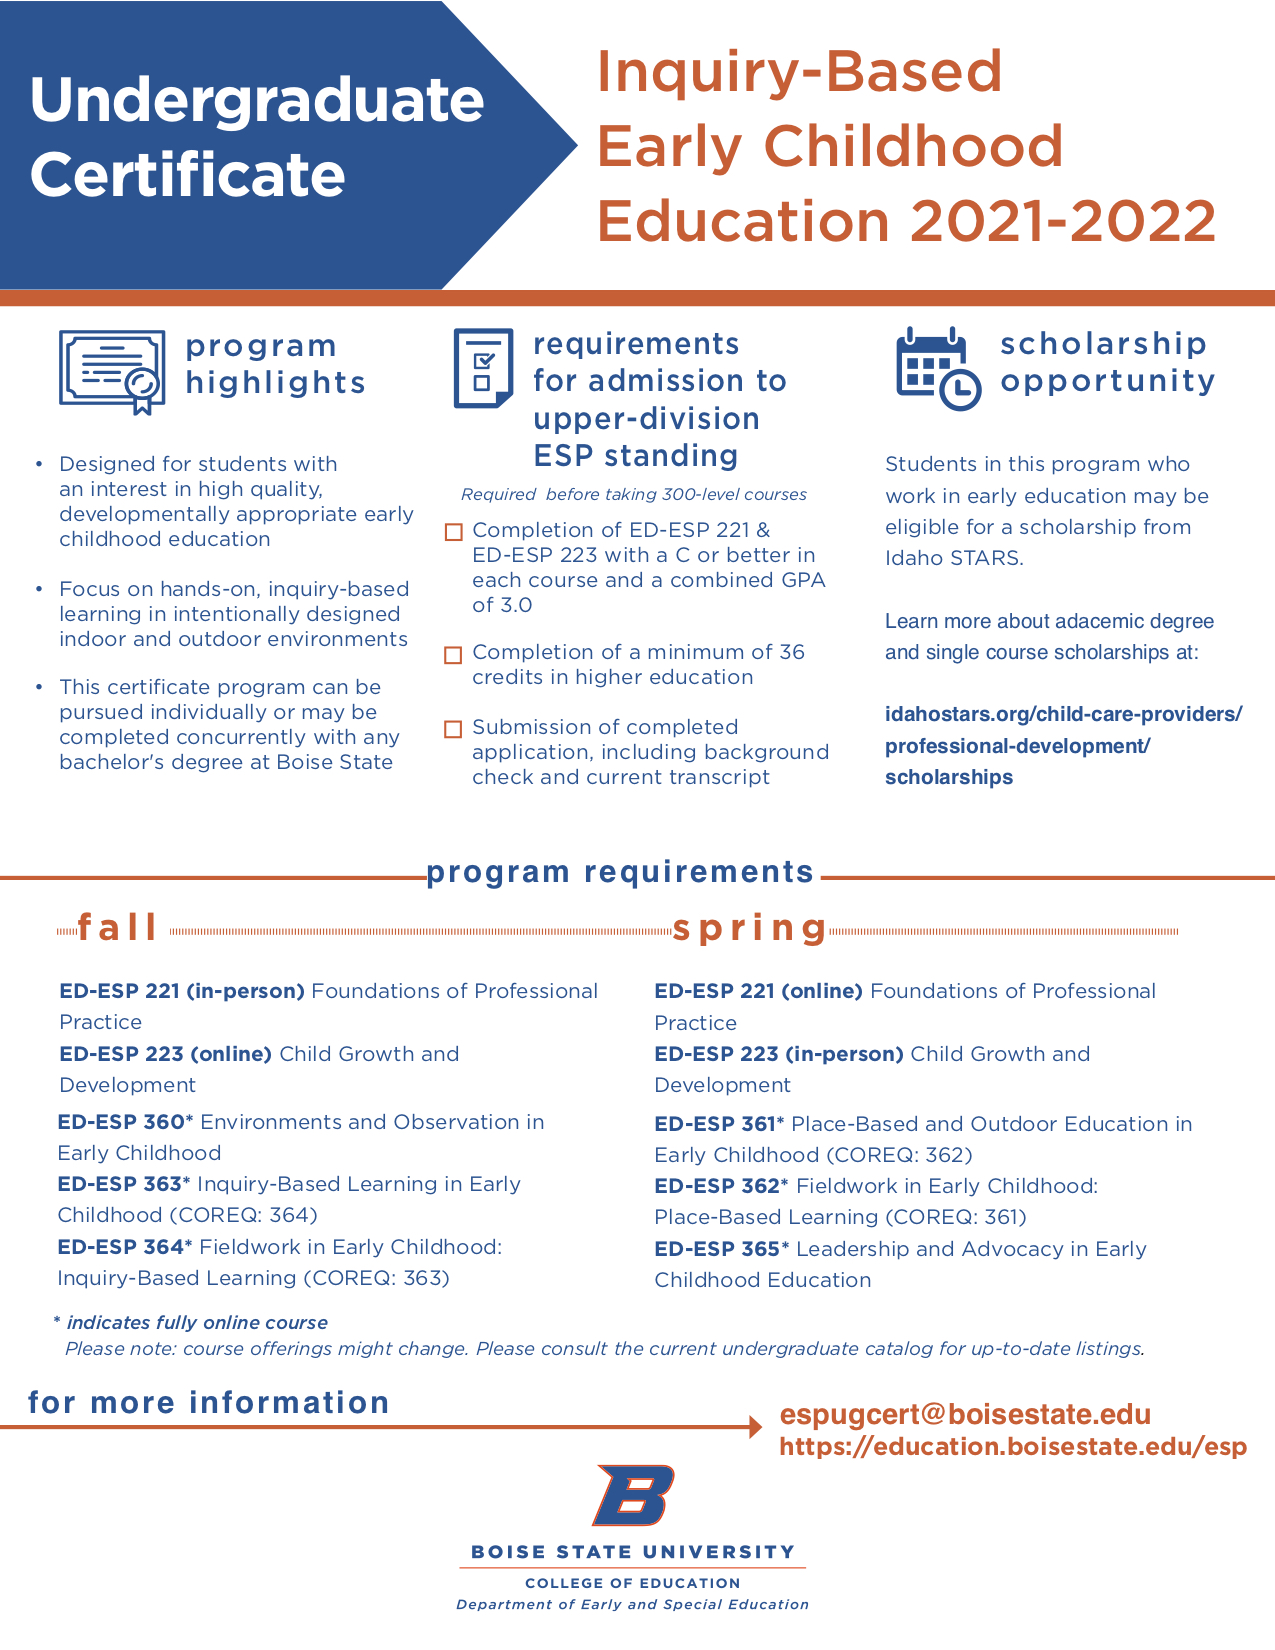 Visual Advising Guide for Inquiry-Based Early Childhood Education 2021-2022